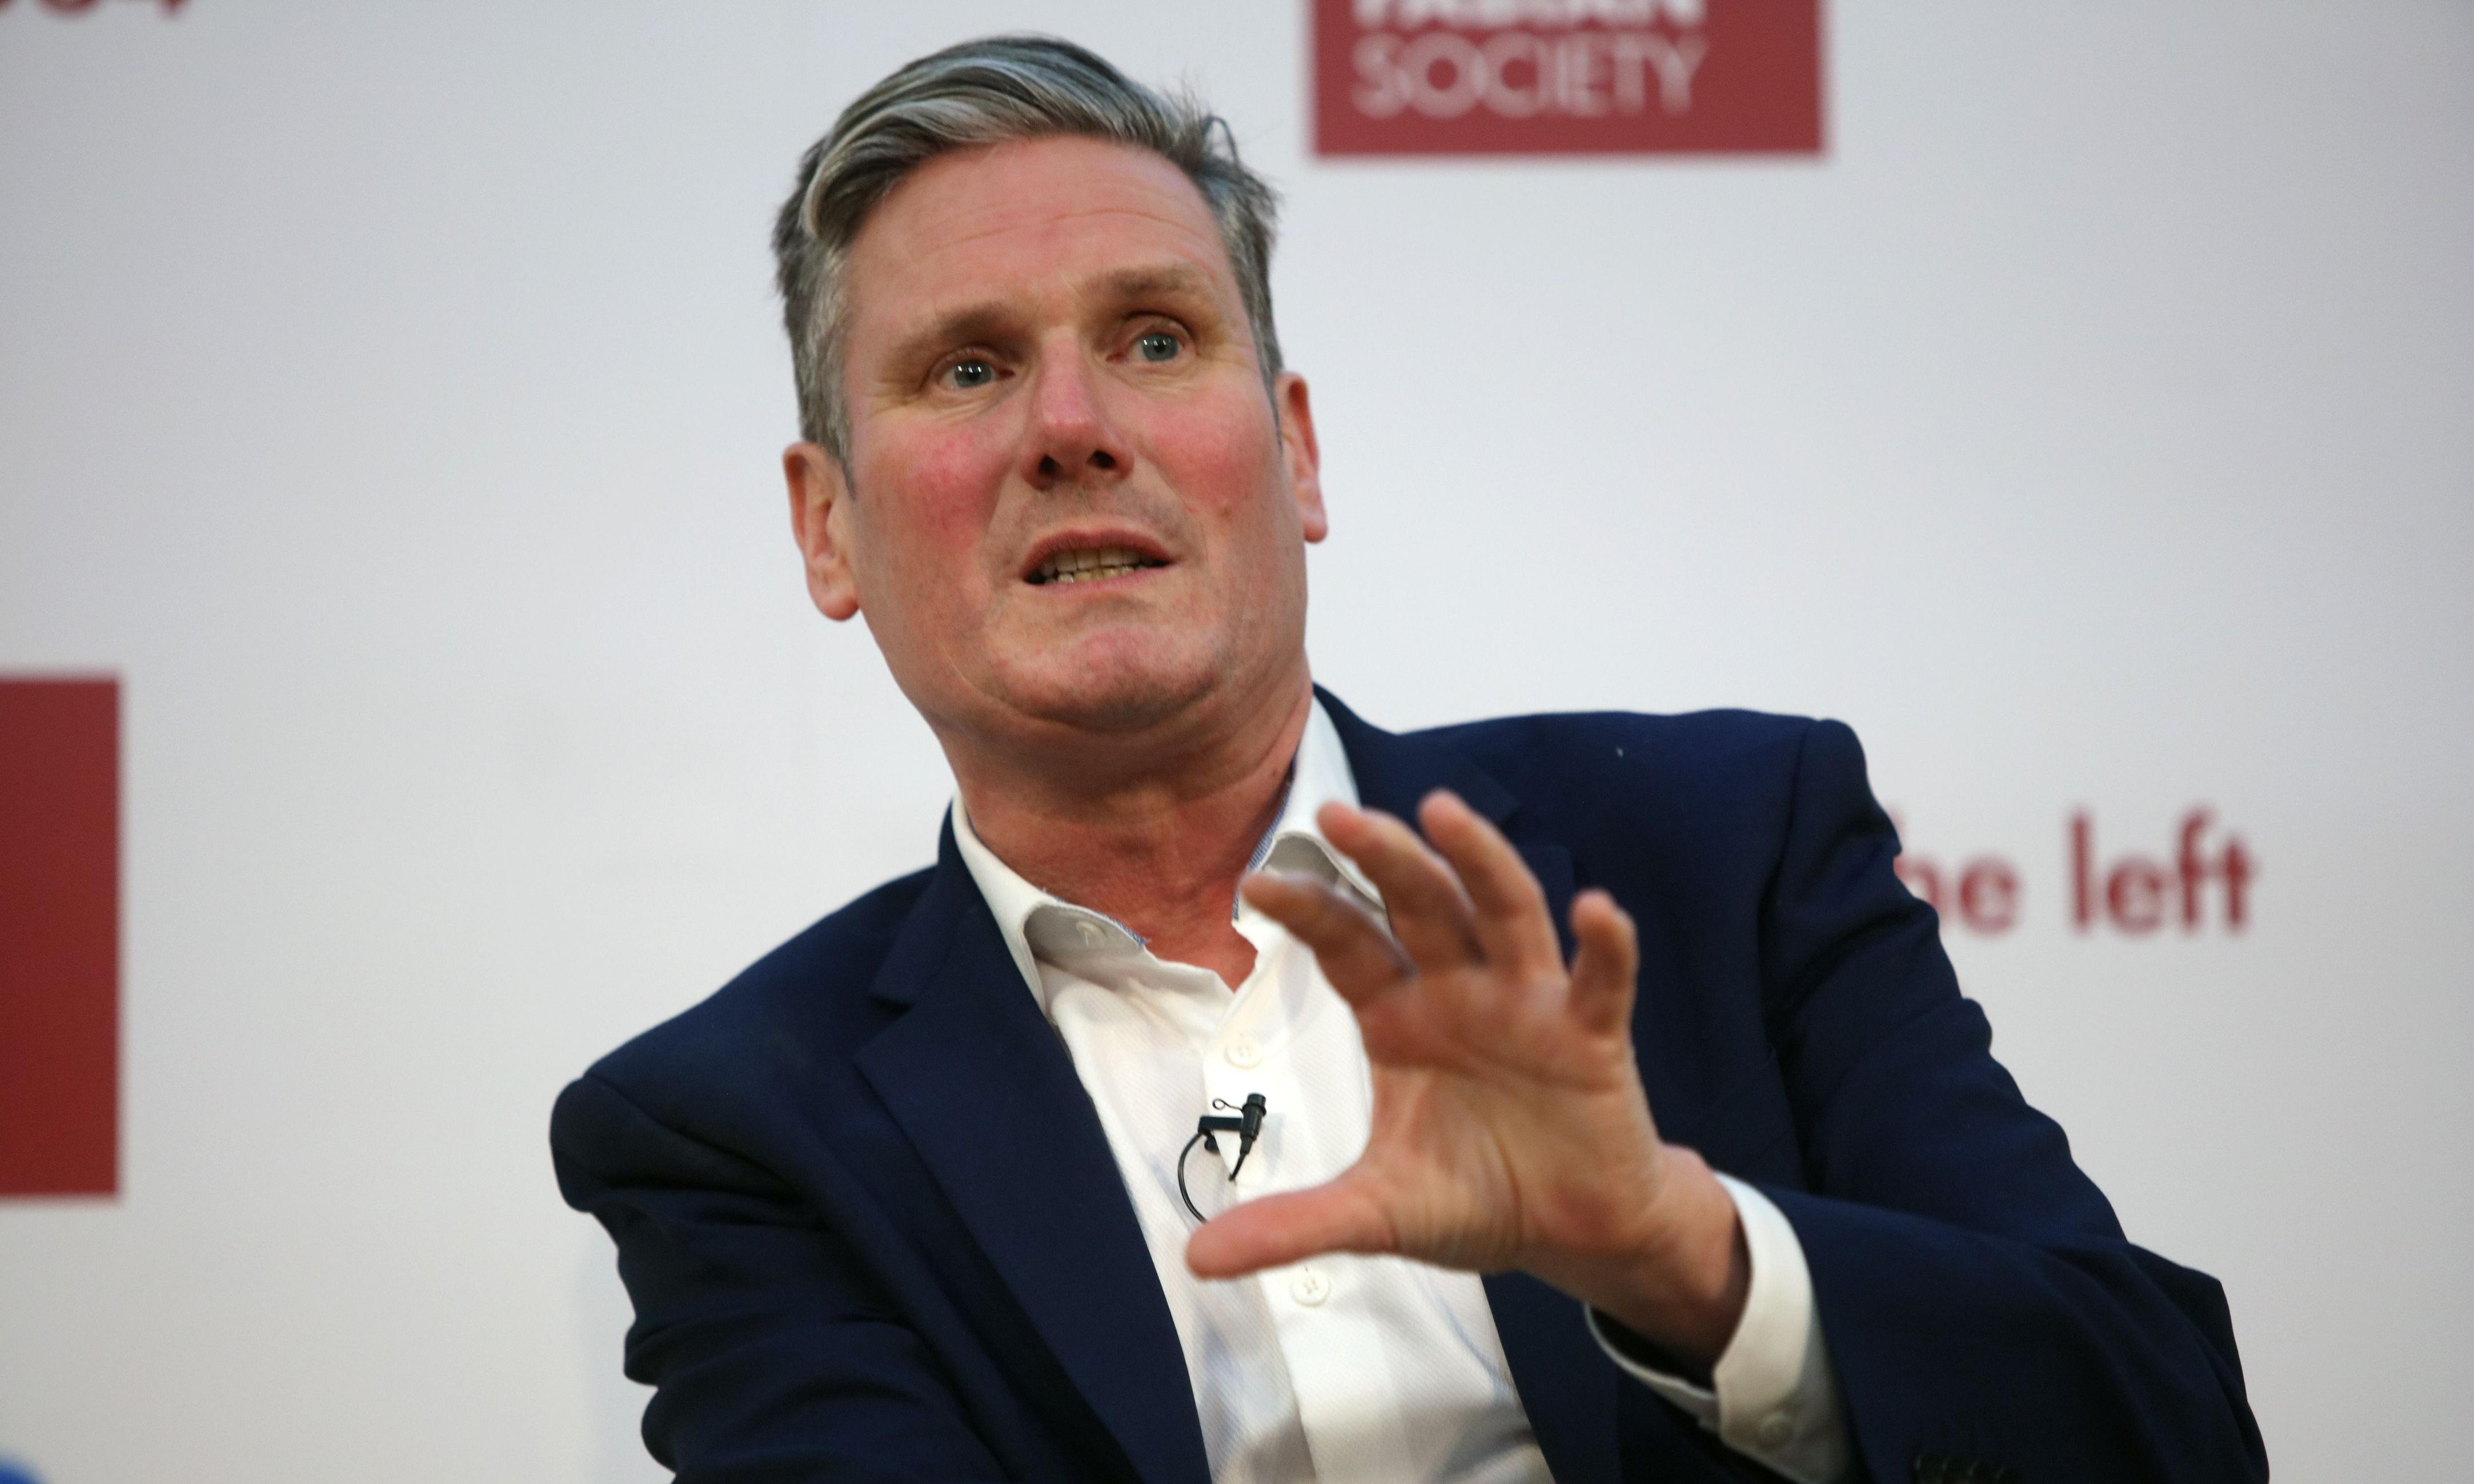 Labour leadership: Keir Starmer wins backing of second trade union